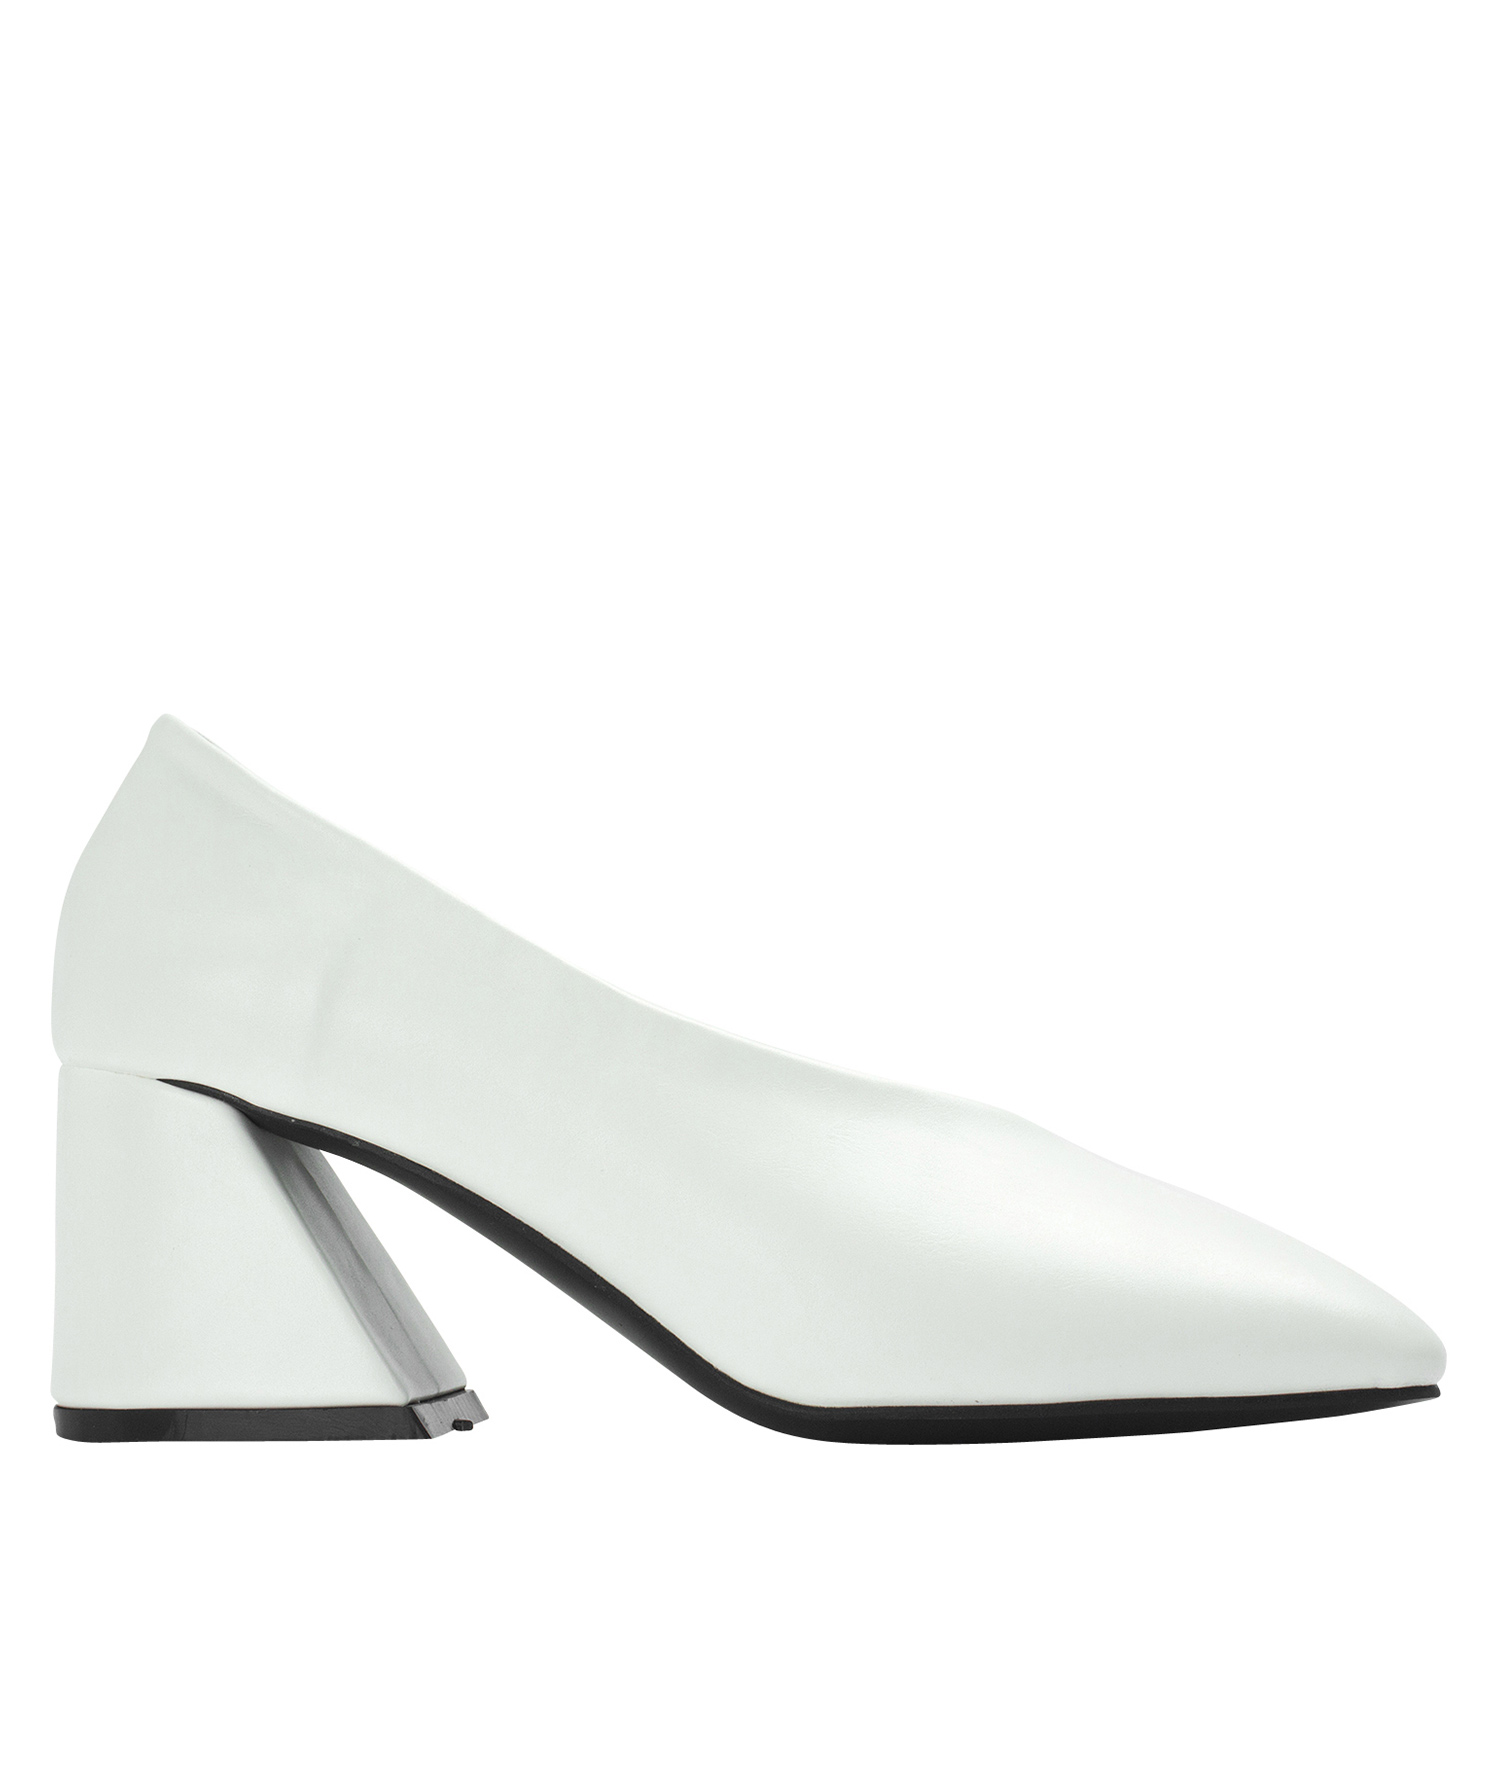 3007811cdc Annakastle Womens Flared Block Heel Pumps White